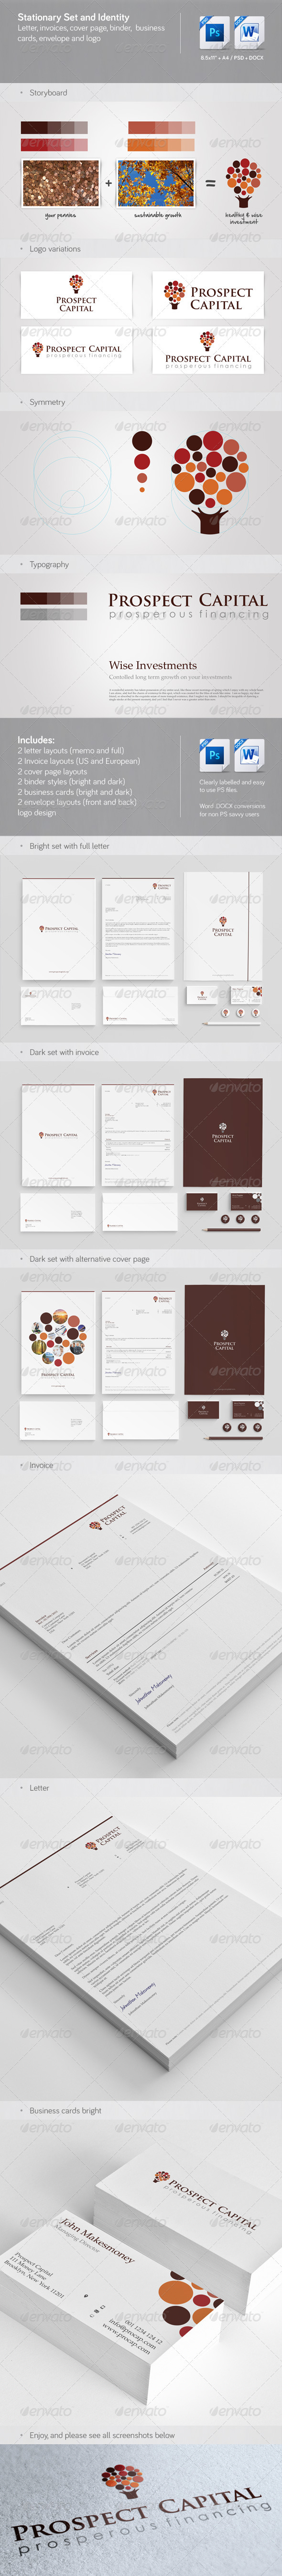 Corporate Stationary, Invoice and Identity - Stationery Print Templates